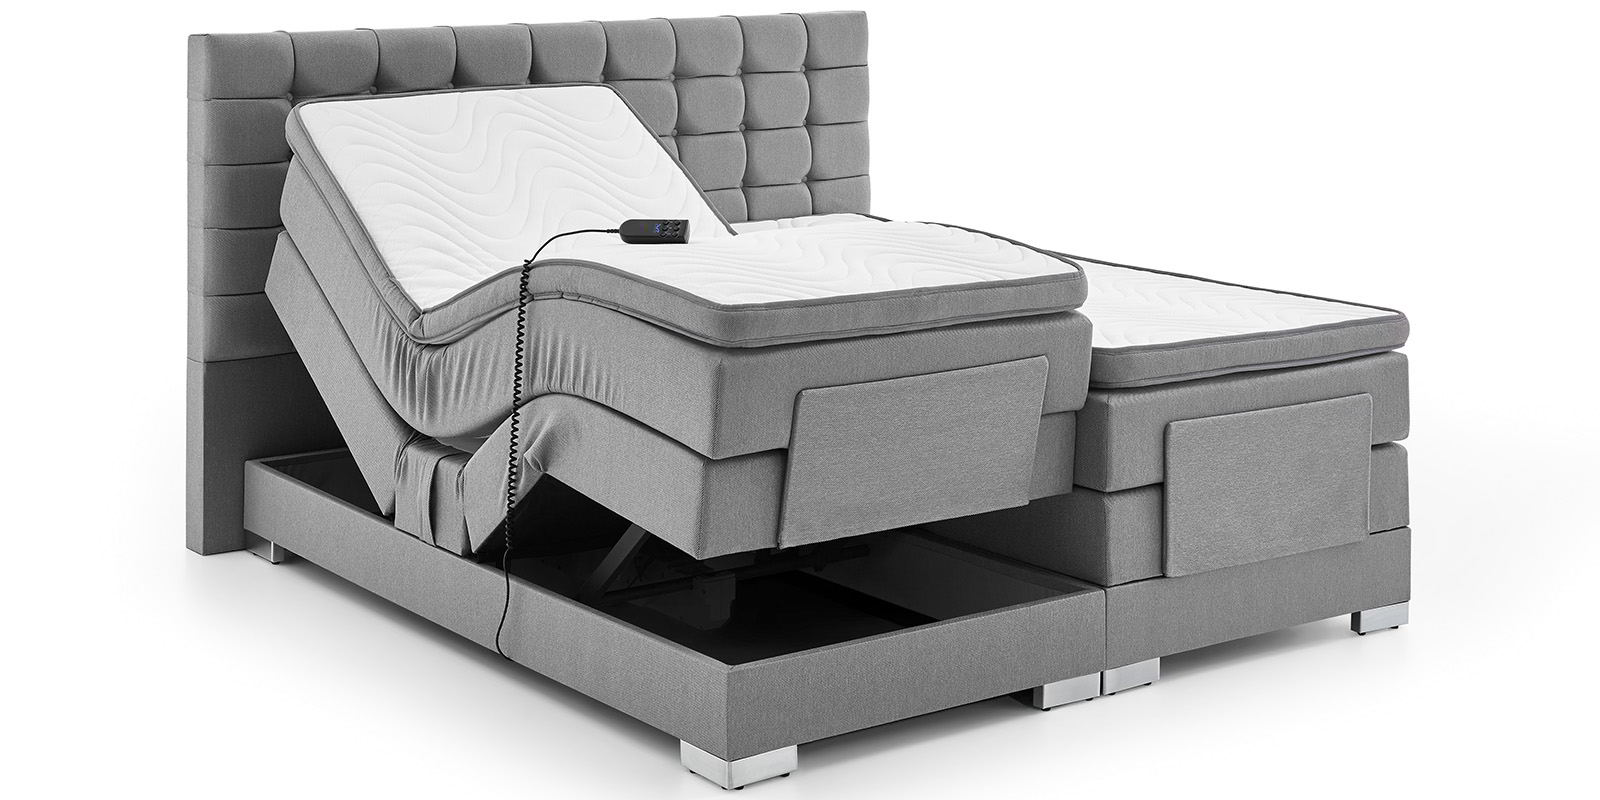 boxspringbett elektrisch verstellbar grau 180x200cm dublin. Black Bedroom Furniture Sets. Home Design Ideas